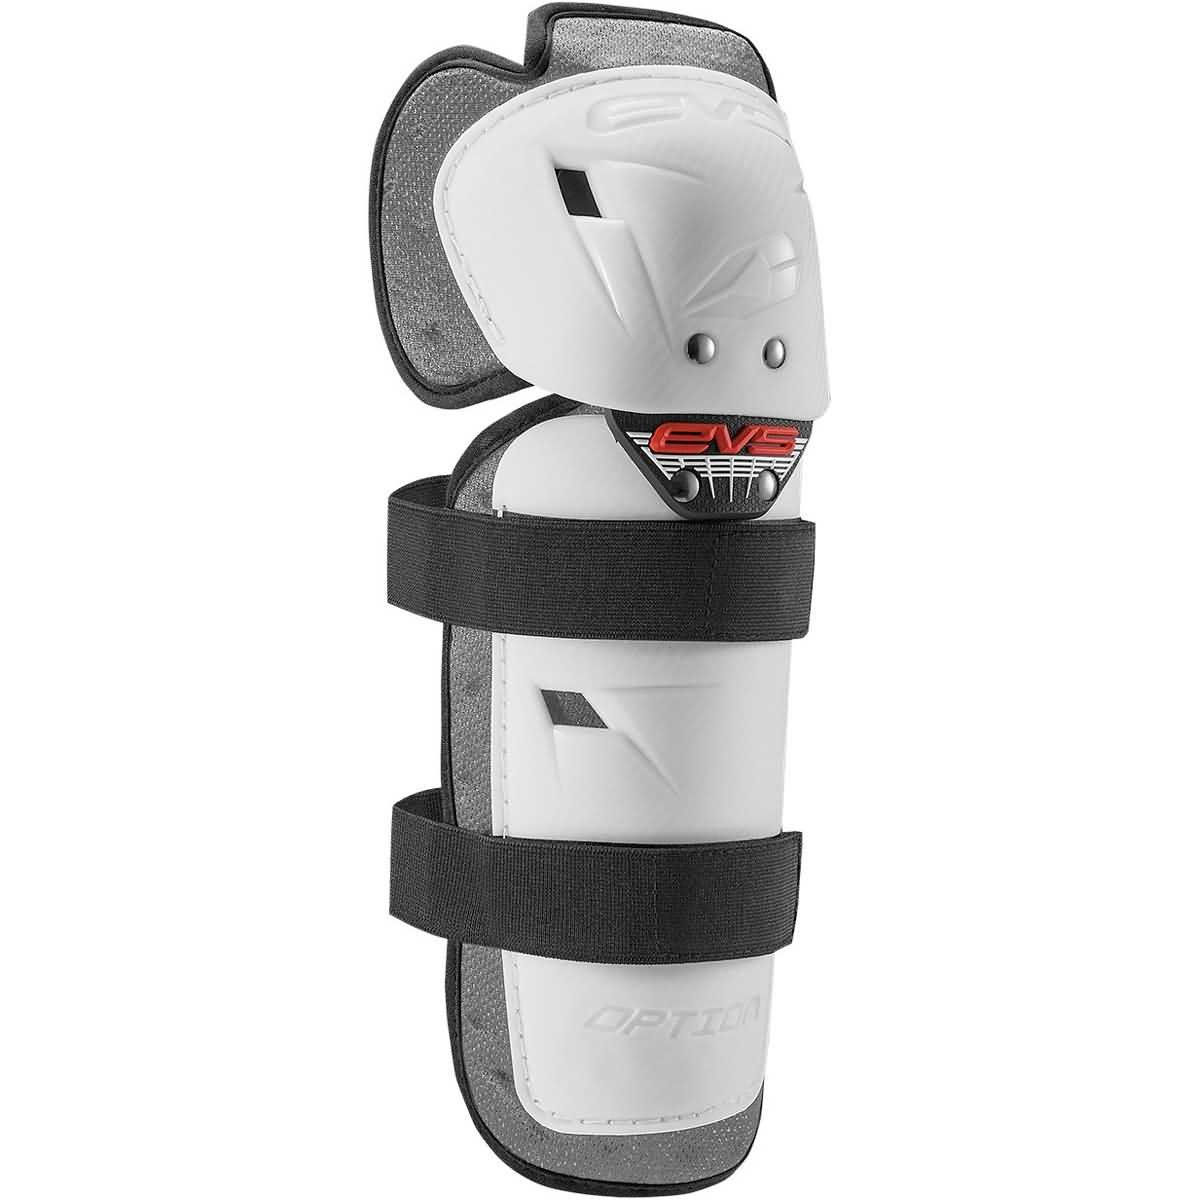 EVS 2016 Option Adult Knee Guard Off-Road Motorcycle Body Armor - White/One Size